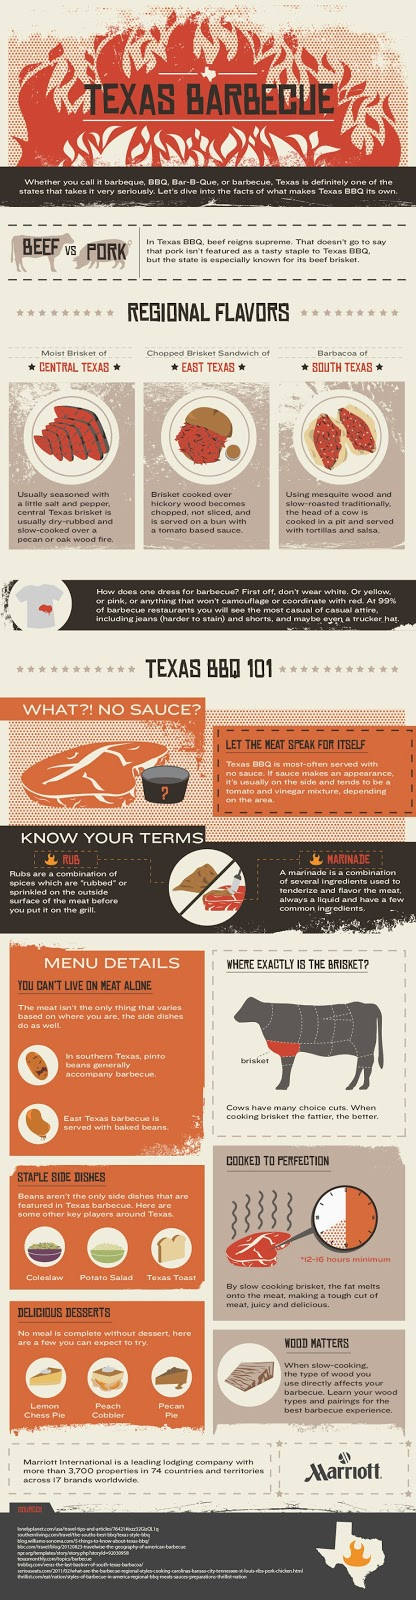 http://www.yougowego.com/theme/barbecue-texas-infographic-cook-texas-beef-brisket/